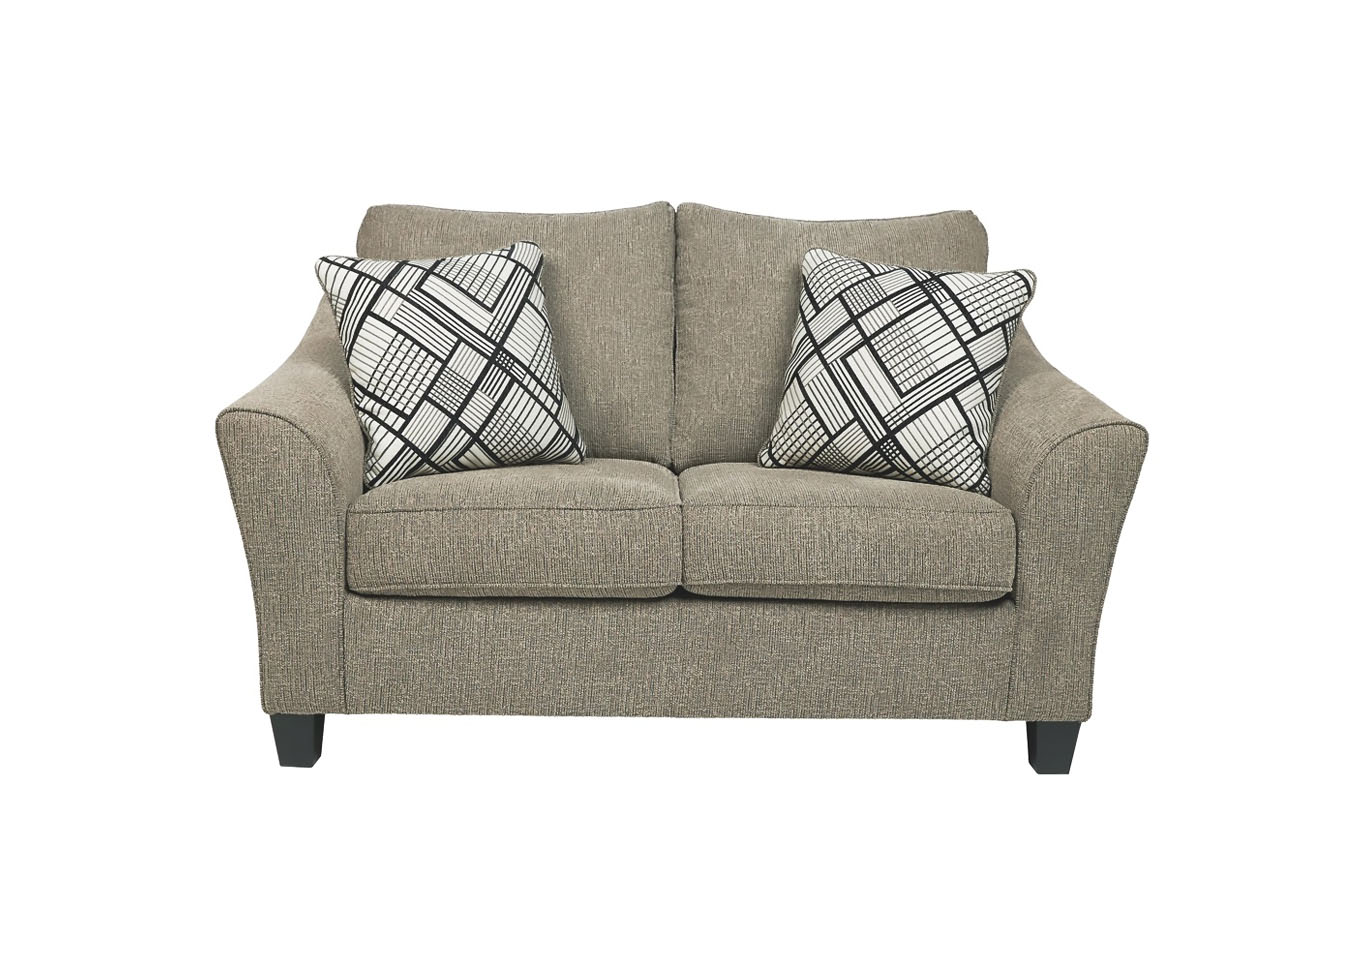 BARNESLEY PLATINUM LOVESEAT,ASHLEY FURNITURE INC.